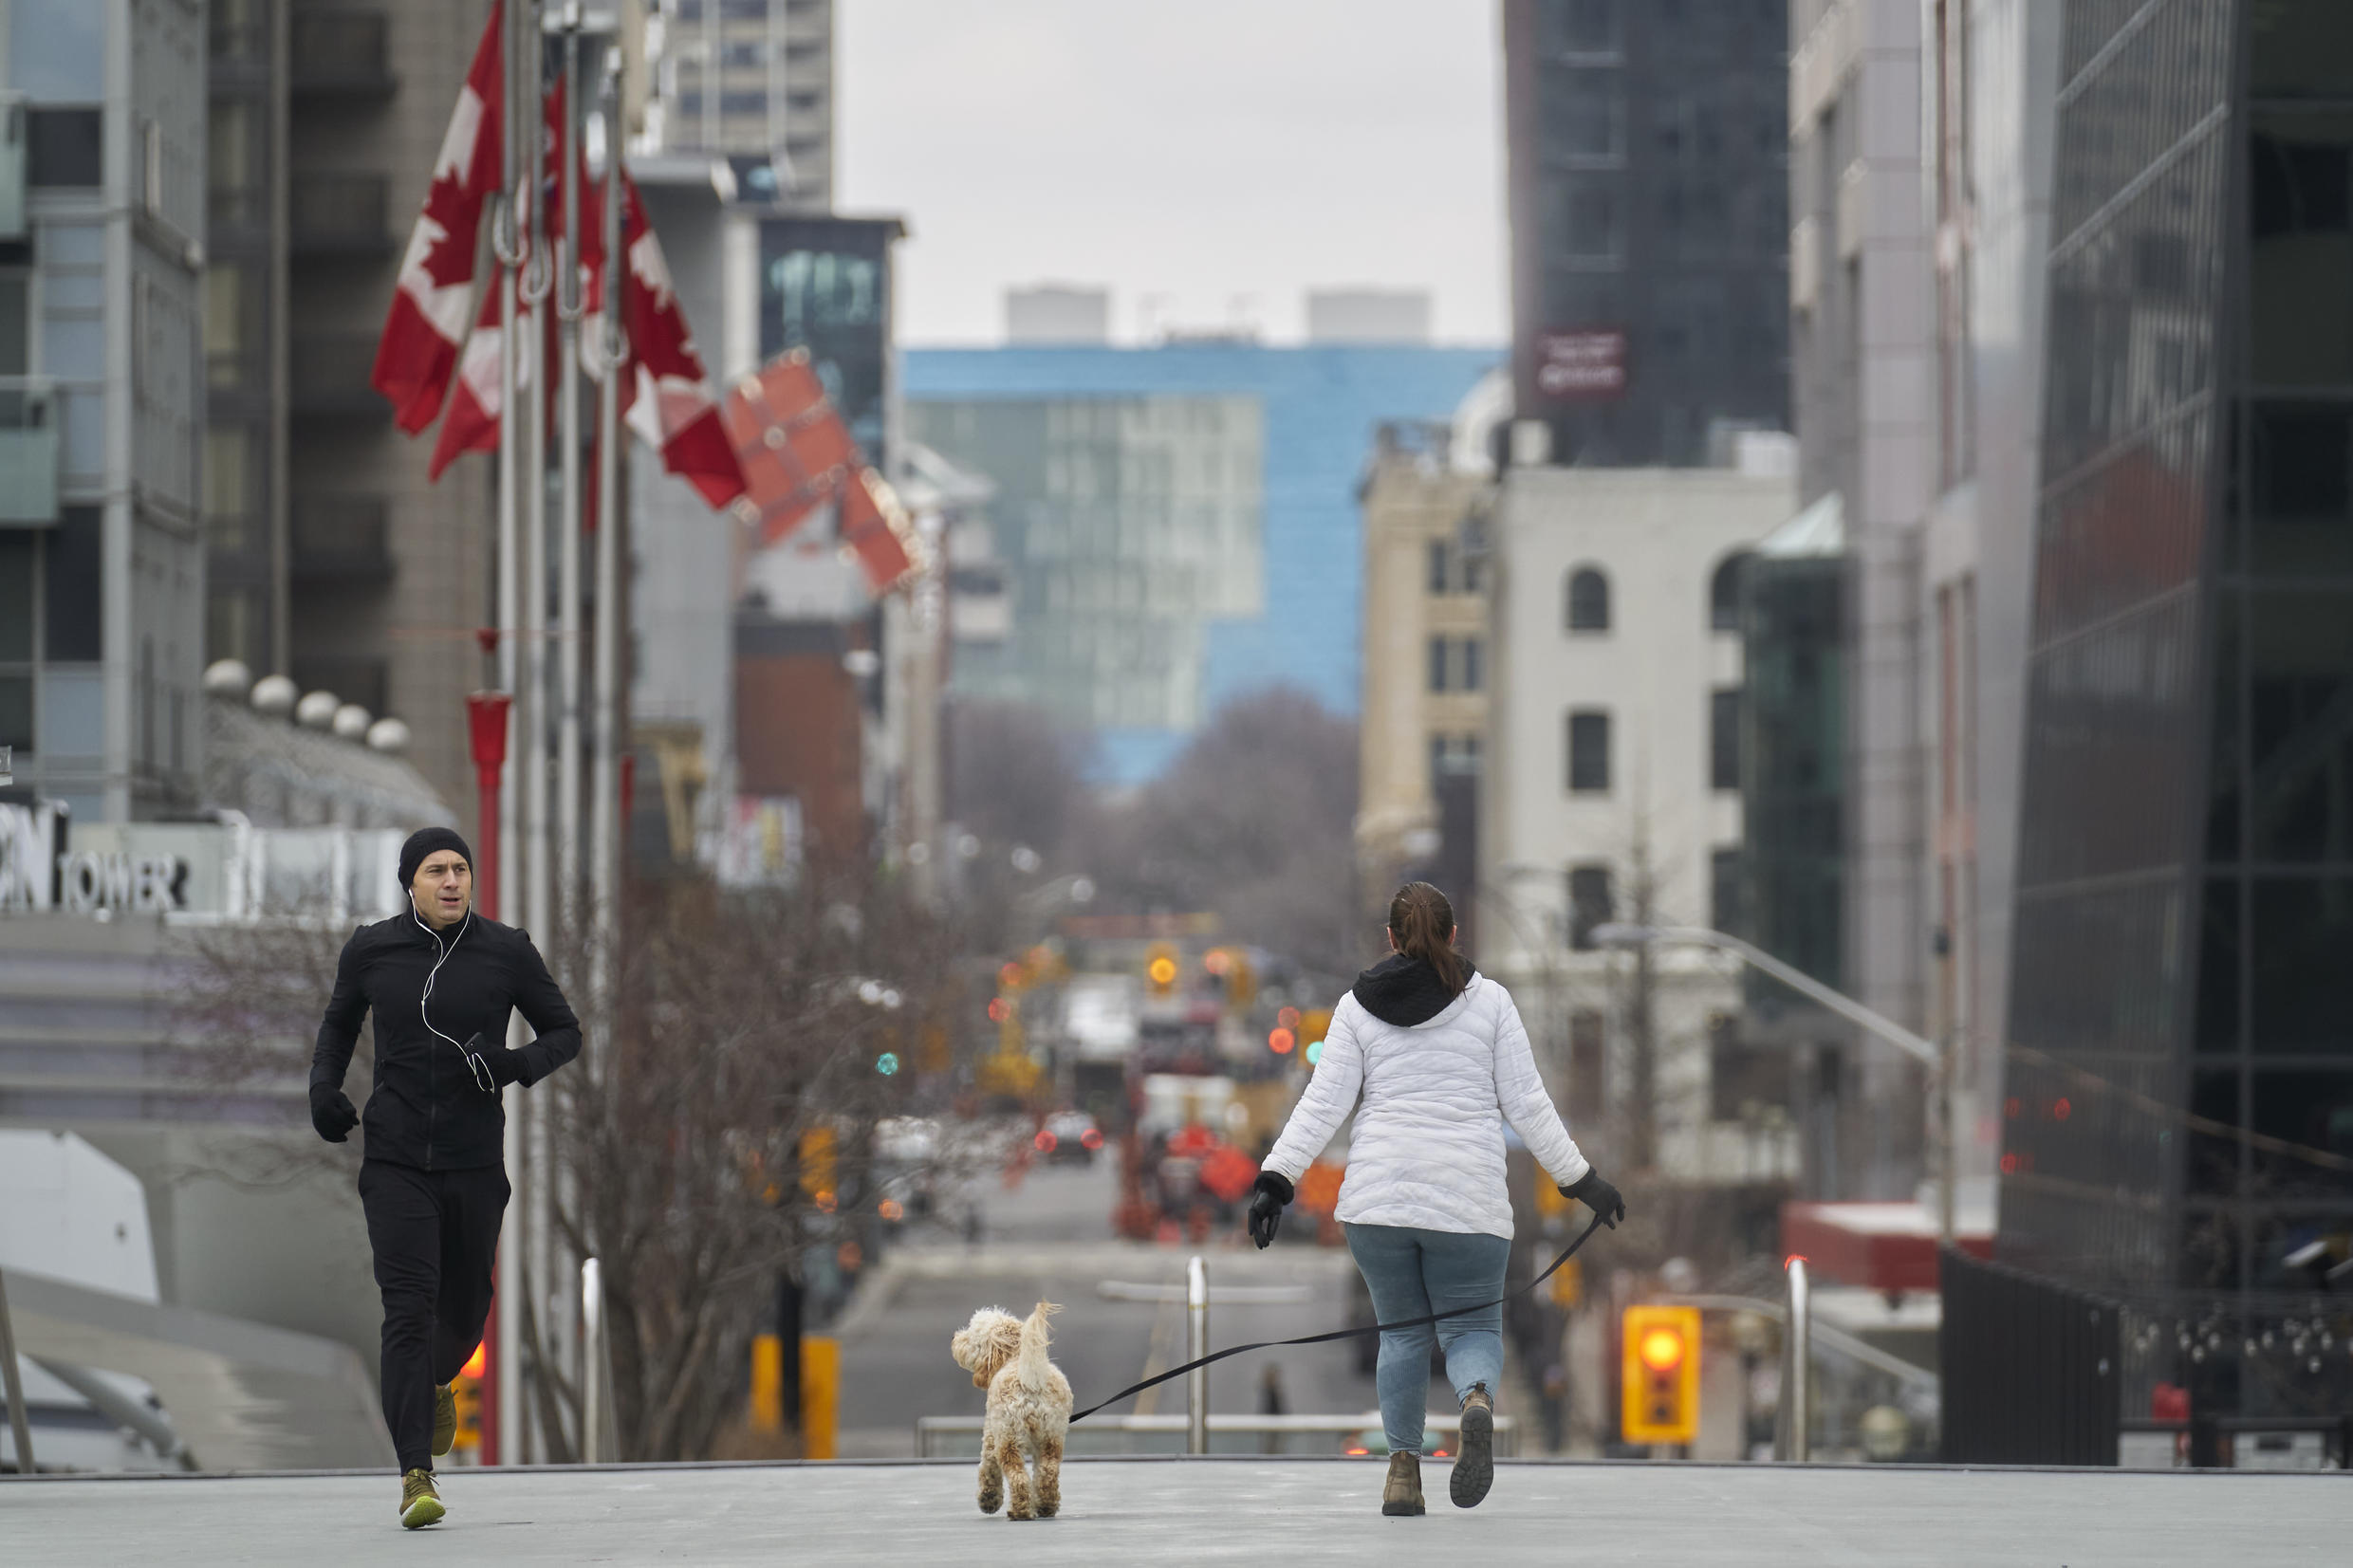 A jogger keeps his distance from a woman walking her dog in downtown Toronto, Ontario, while a Can$82 billion plan to aid Canadians cope with the economic impact of the coronavirus pandemic hit a snag in the Ottawa parliament